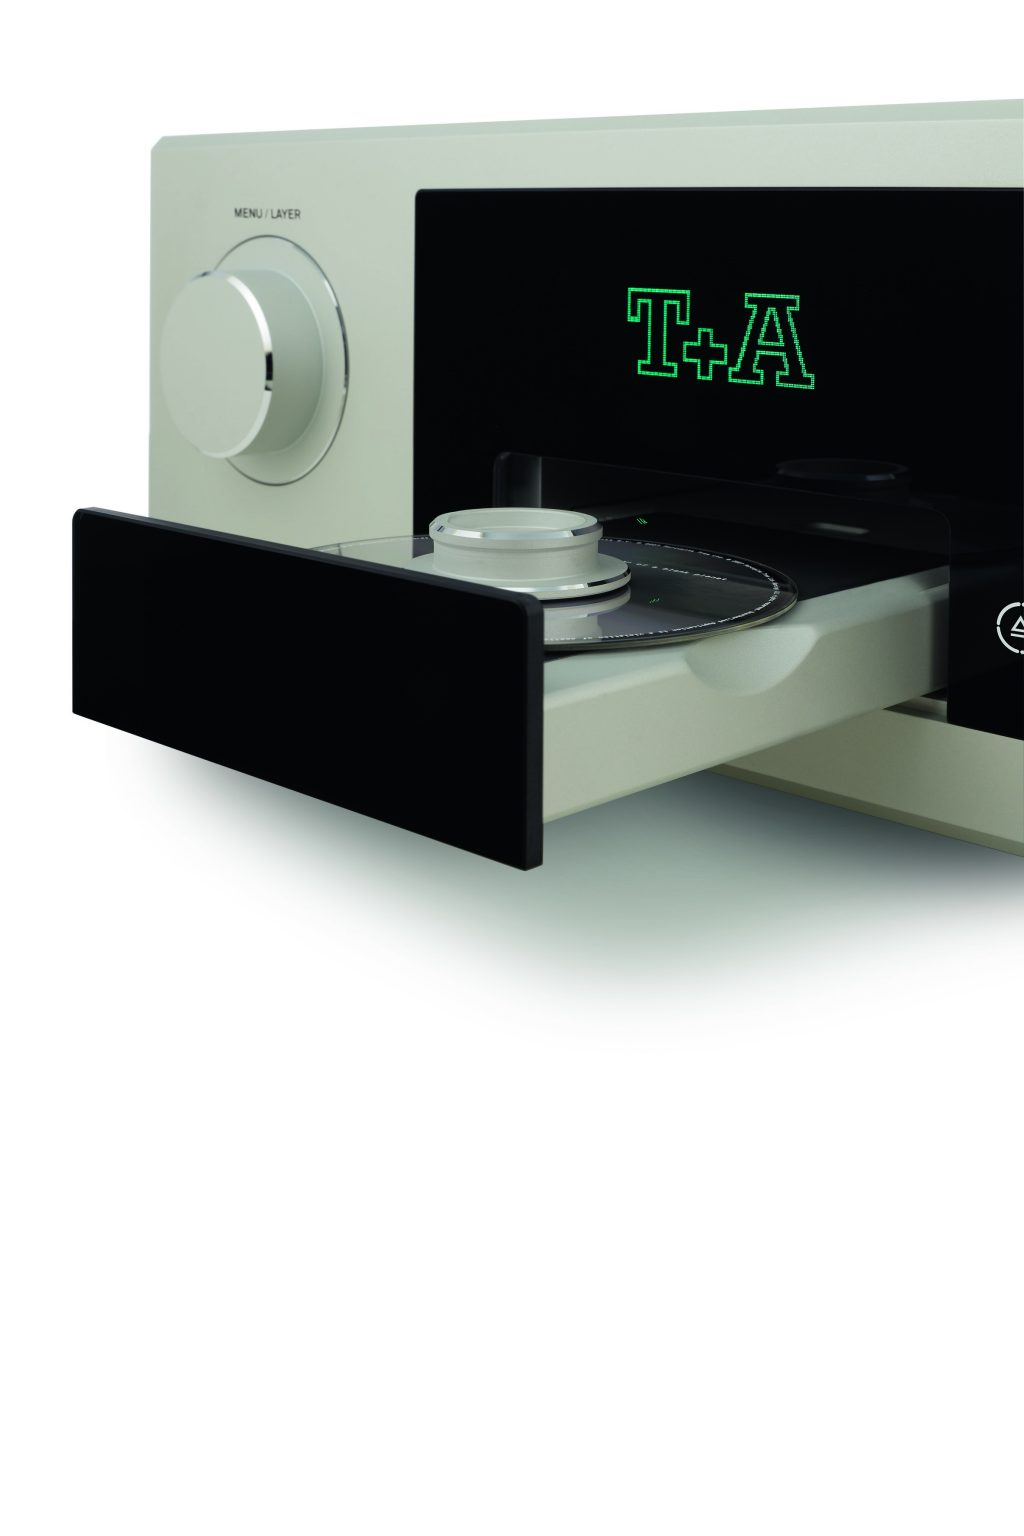 T+A HV range extended - HiFi and Music Source